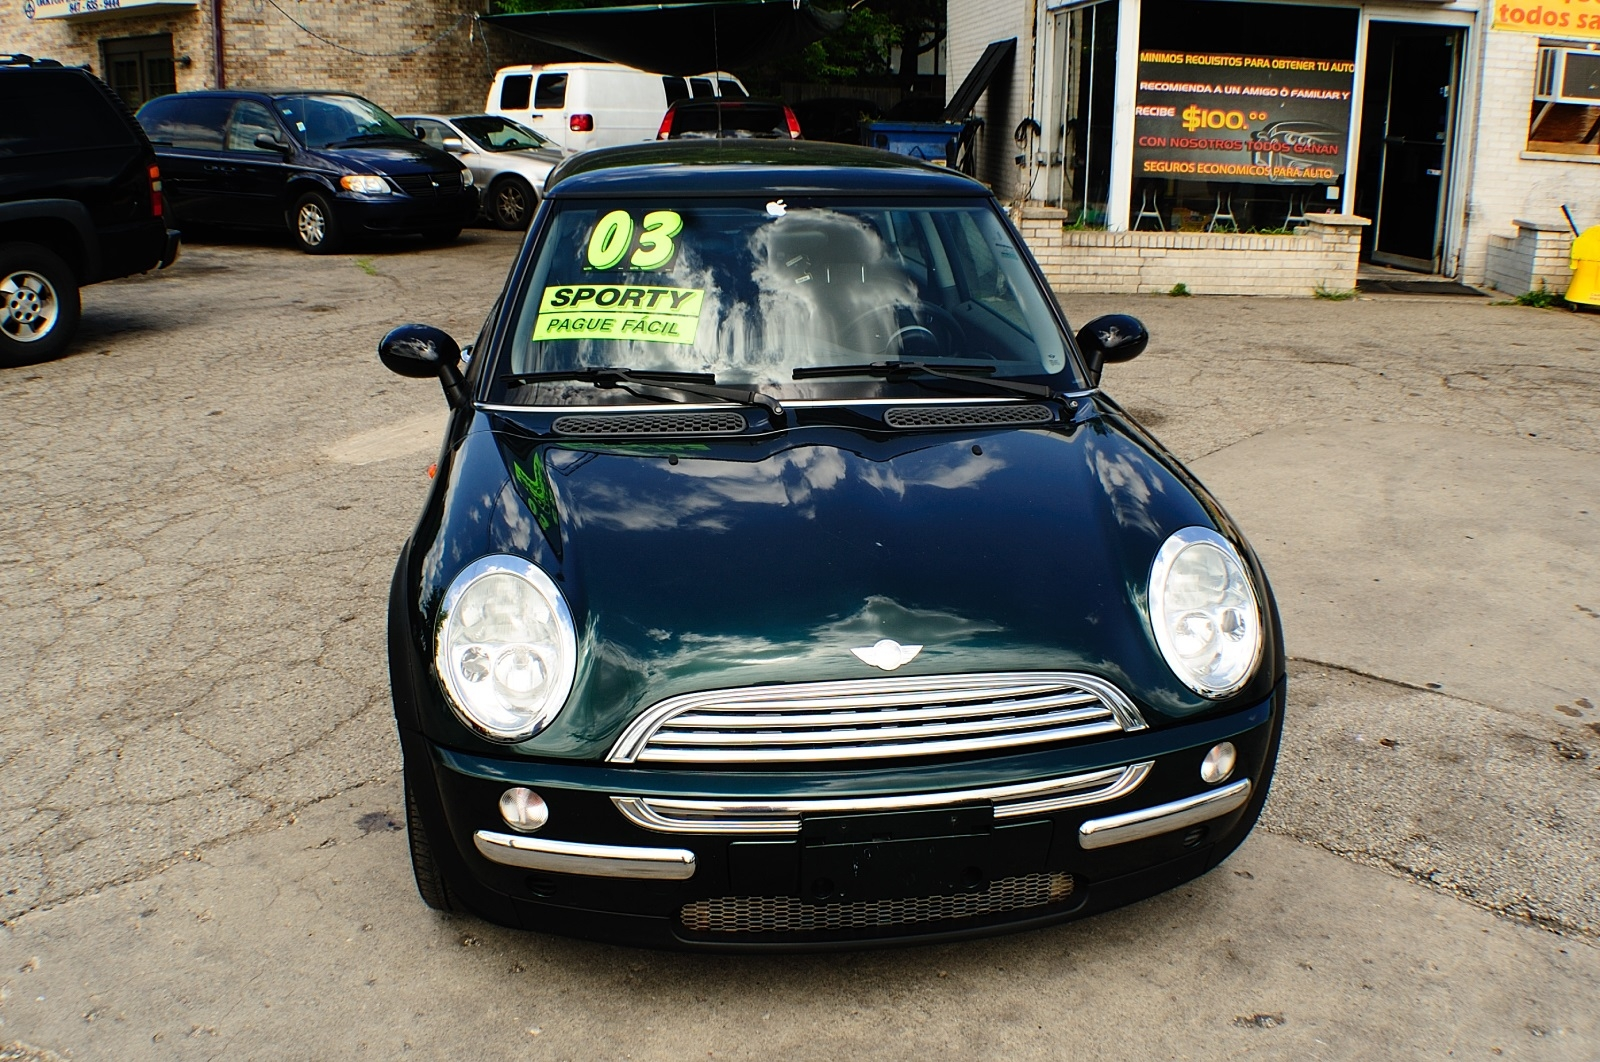 2003 Mini Cooper Green Used Sport Coupe used car sale Buffalo Grove Bollingbrook Carol Stream